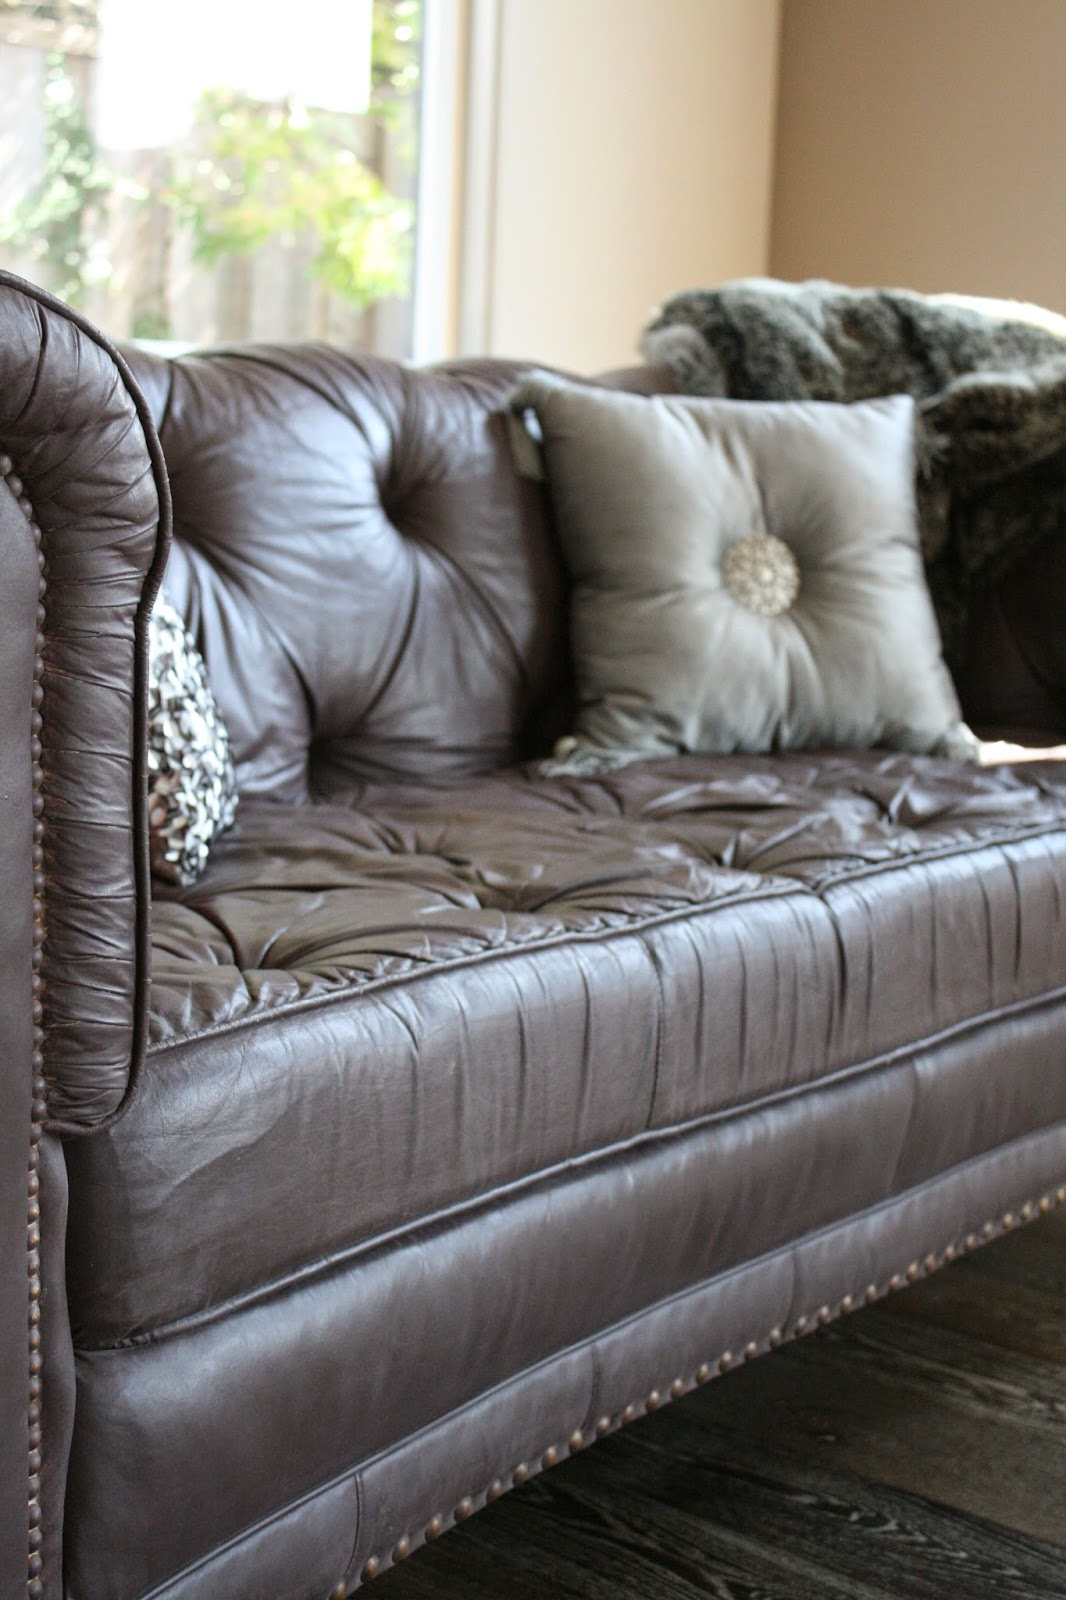 Can I Spray Paint My Leather Sofa Fabric Set Painted Reloved Rubbish The Thesofa